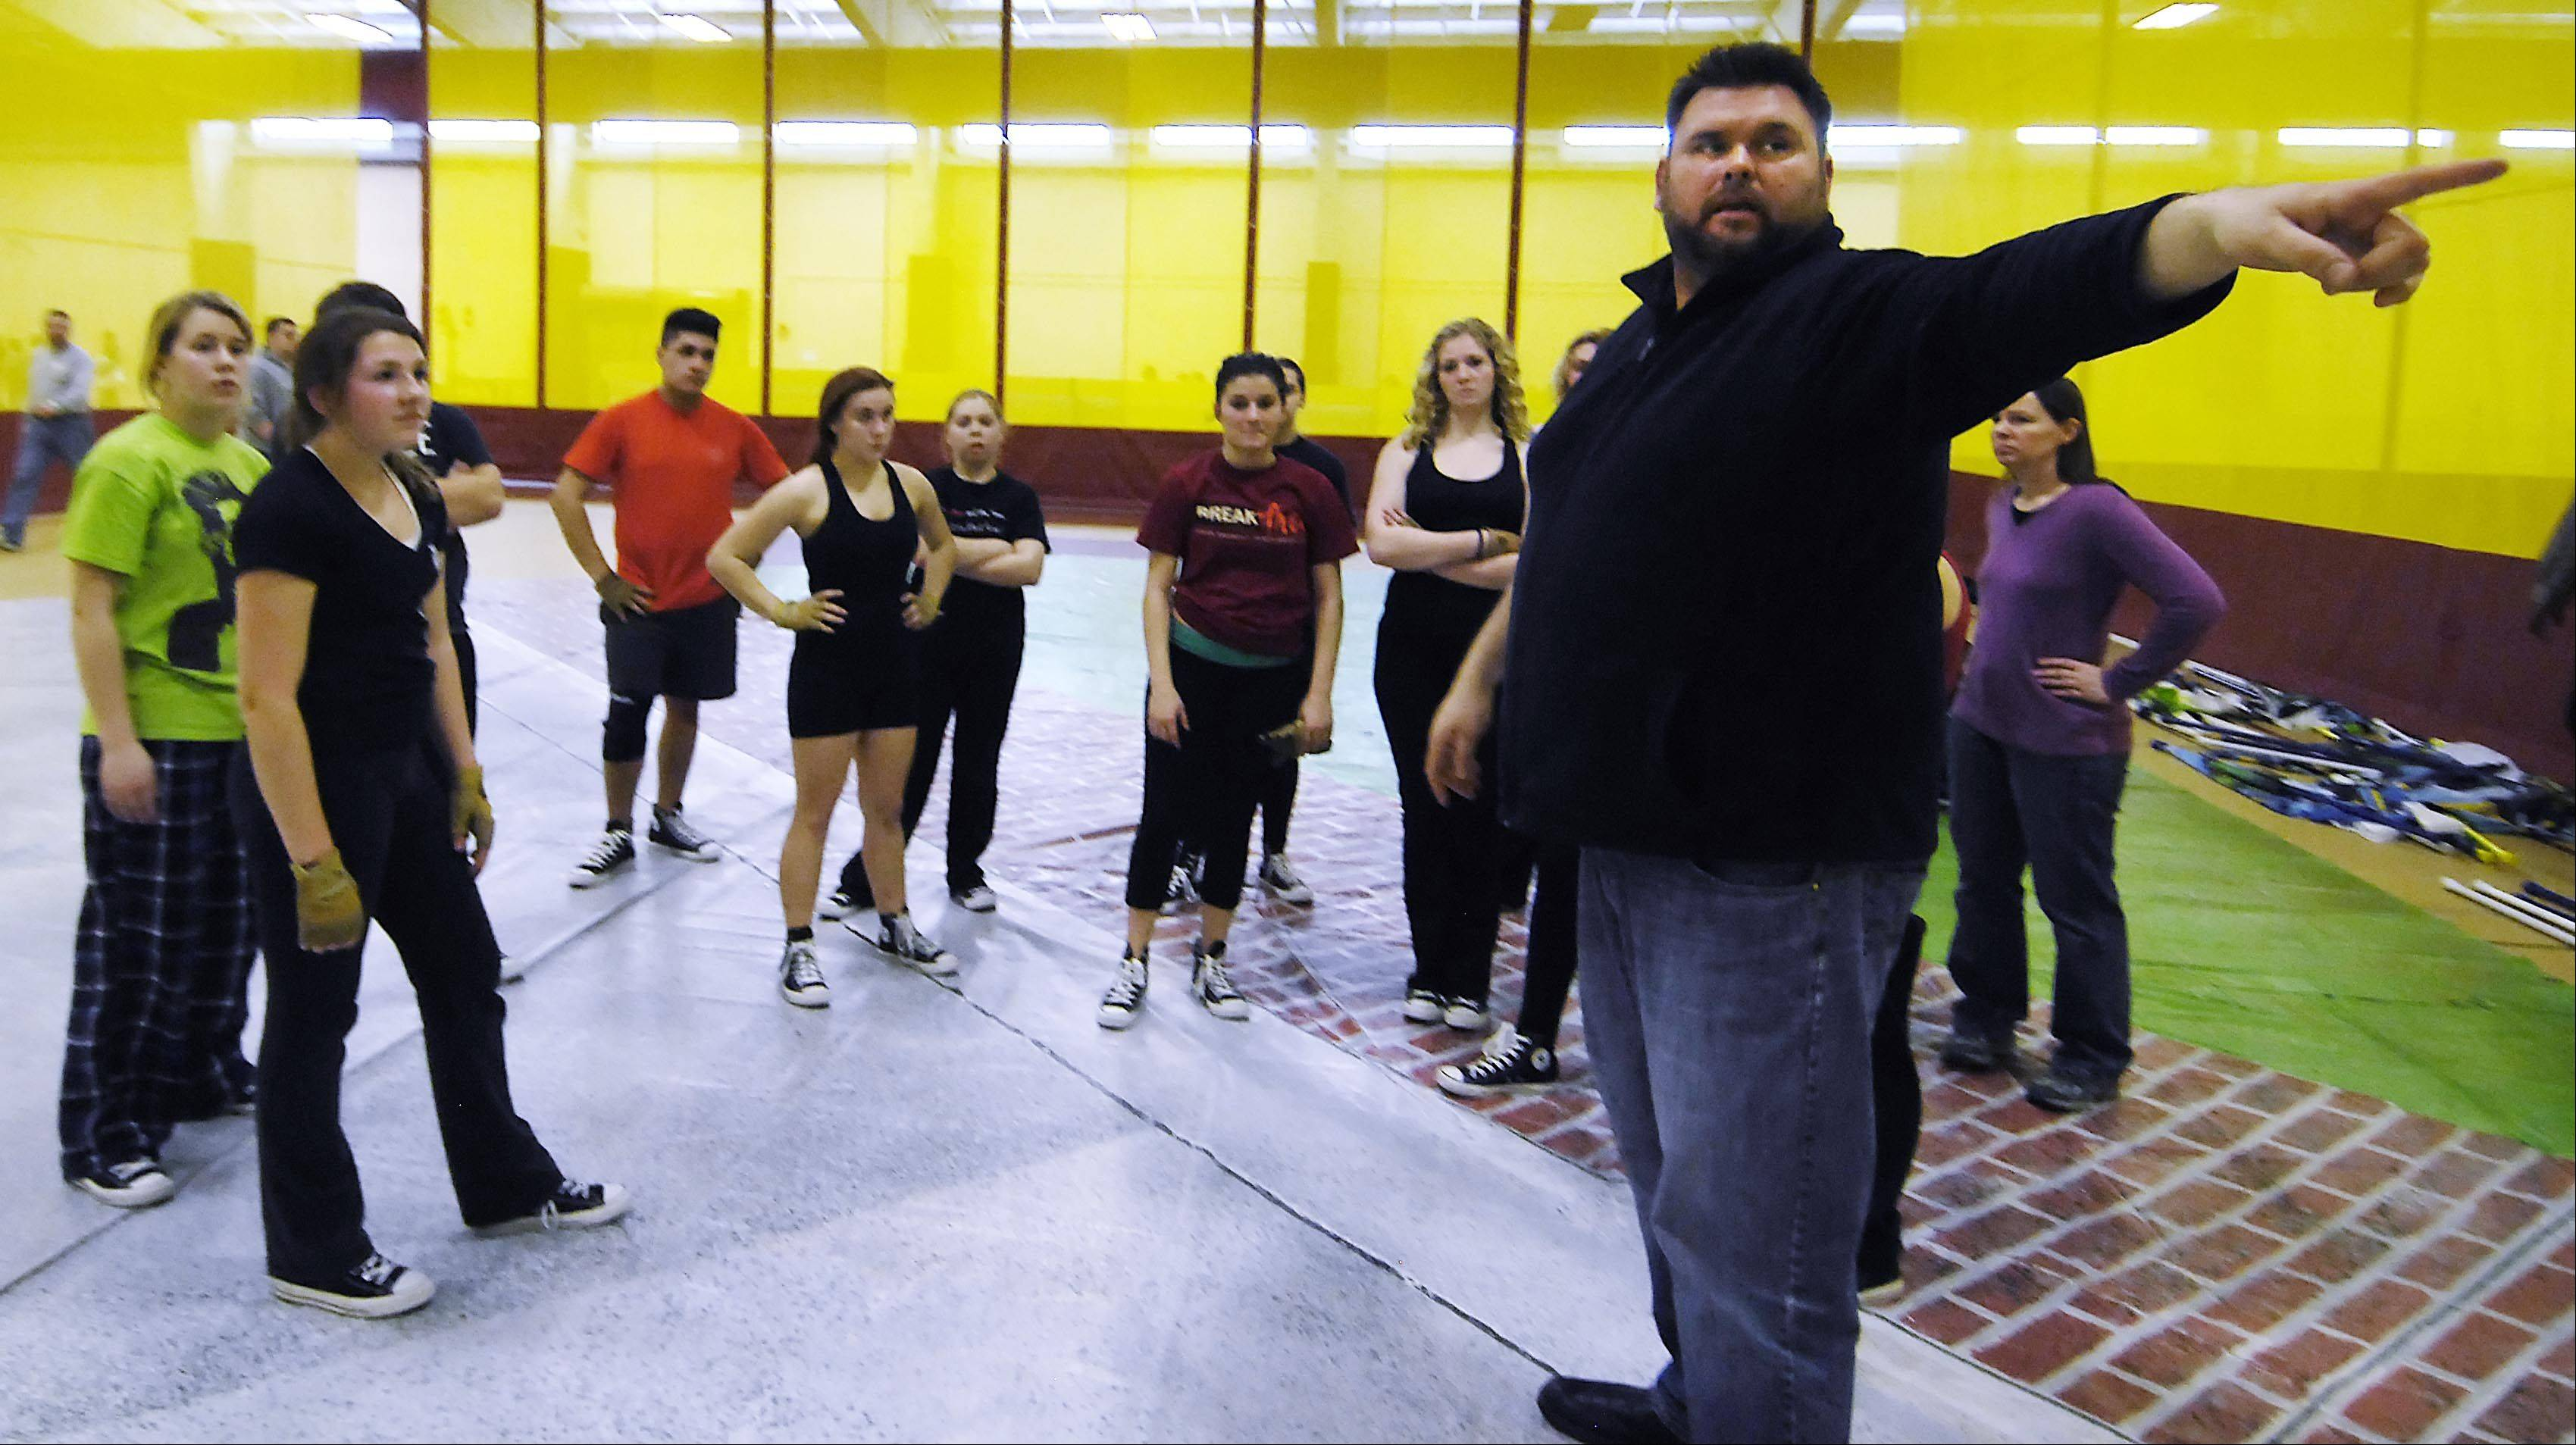 Eric Hall, director of the Allegiance Youth Color Guard of Dundee, tells his A team, made up of youths ages 14 to 22, where to go to enter the competition gymnasium at Batavia High School earlier this year.